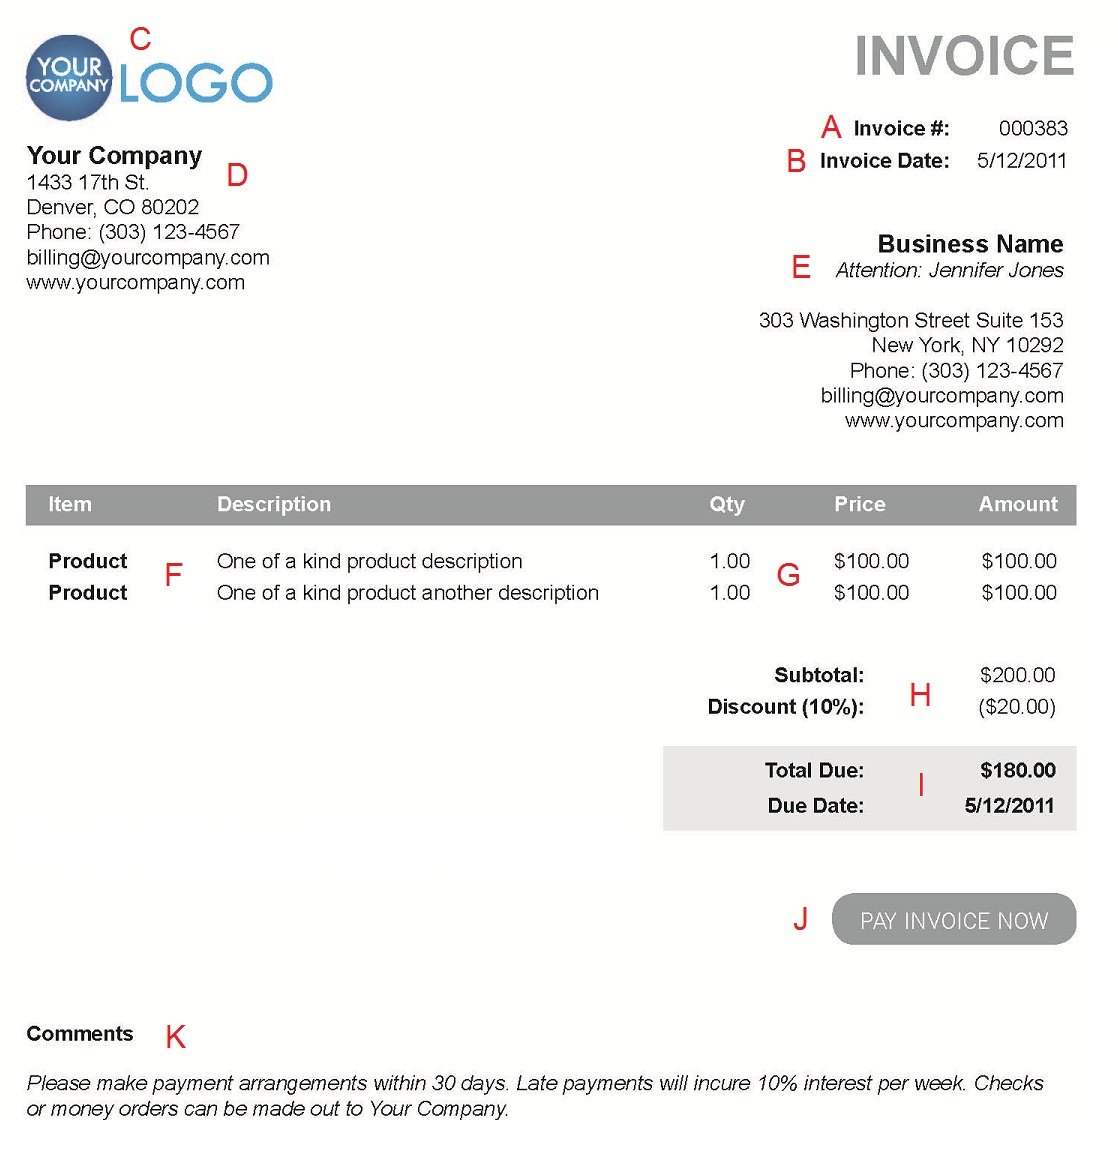 Coolmathgamesus  Scenic The  Different Sections Of An Electronic Payment Invoice With Likable A  With Charming Late Payment Invoice Template Also Free Invoice Word Template In Addition Free Invoice Software For Small Business Download And Proforma Invoice Xls As Well As Standard Invoice Terms And Conditions Additionally Invoice Template Open Office Free From Paysimplecom With Coolmathgamesus  Likable The  Different Sections Of An Electronic Payment Invoice With Charming A  And Scenic Late Payment Invoice Template Also Free Invoice Word Template In Addition Free Invoice Software For Small Business Download From Paysimplecom